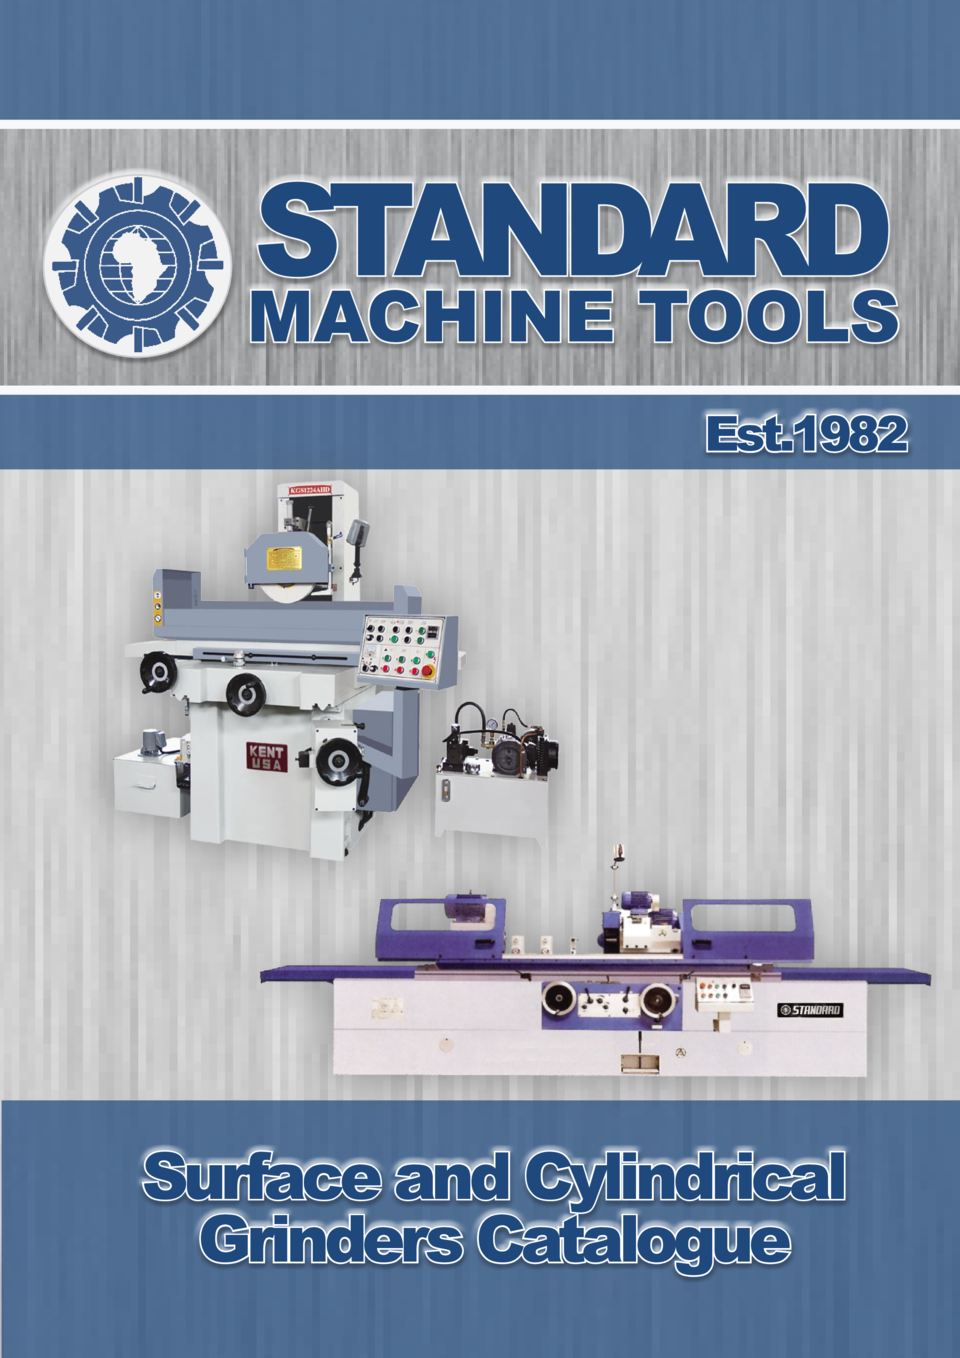 STANDARD  MACHINE TOOLS Est.1982  Surface and Cylindrical Grinders Catalogue